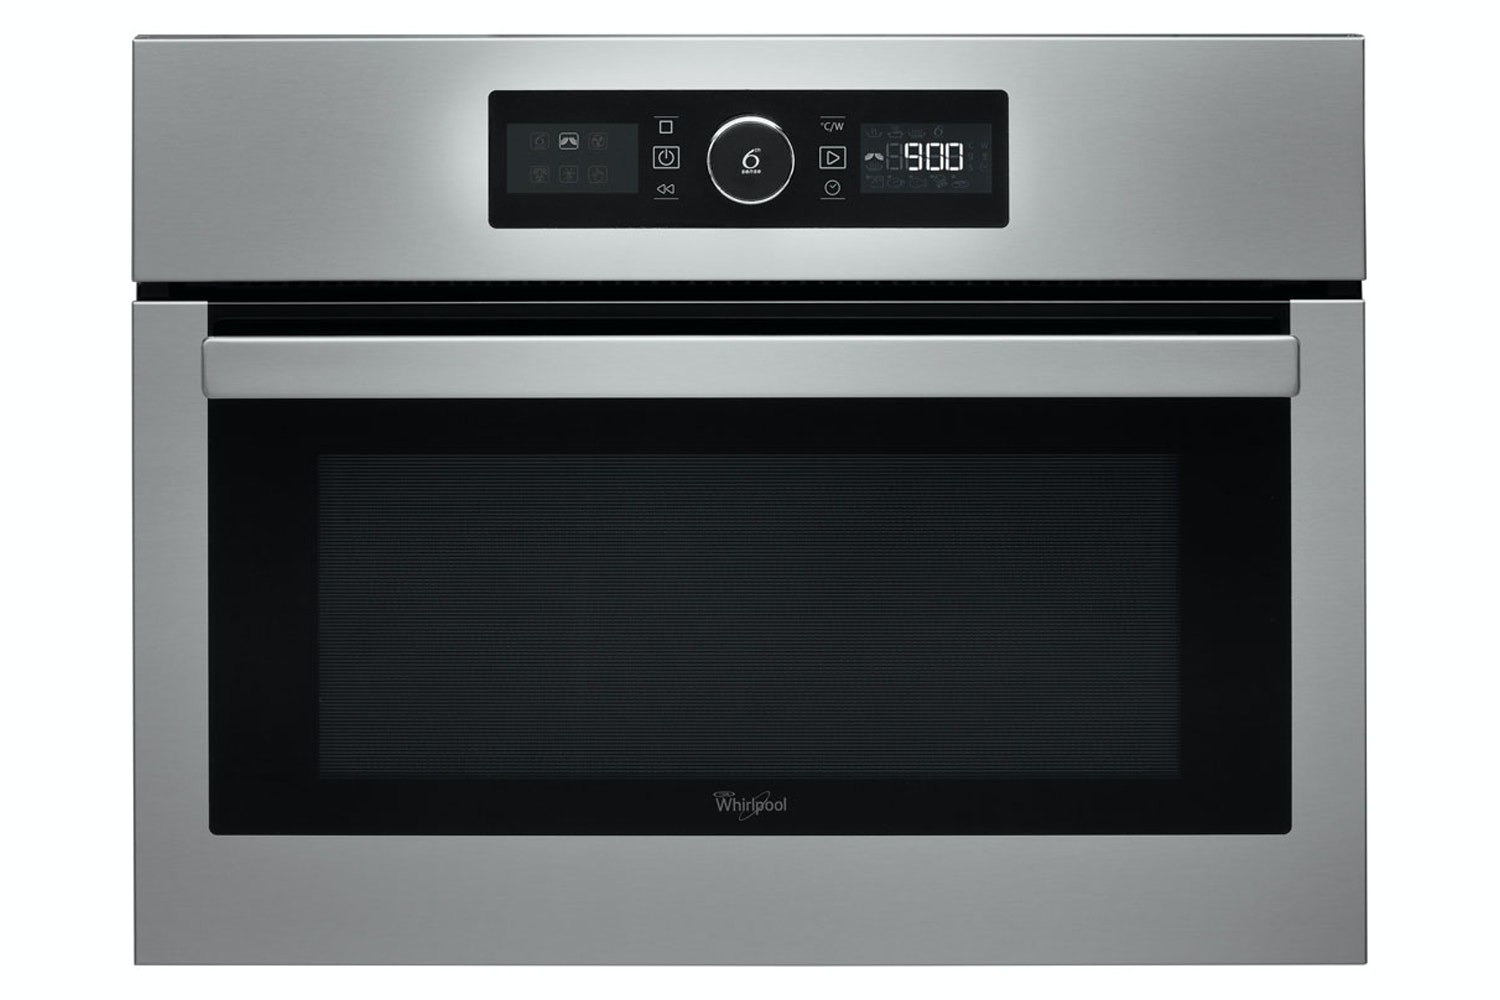 Whirlpool Built-in Microwave Oven | AMW505/IX